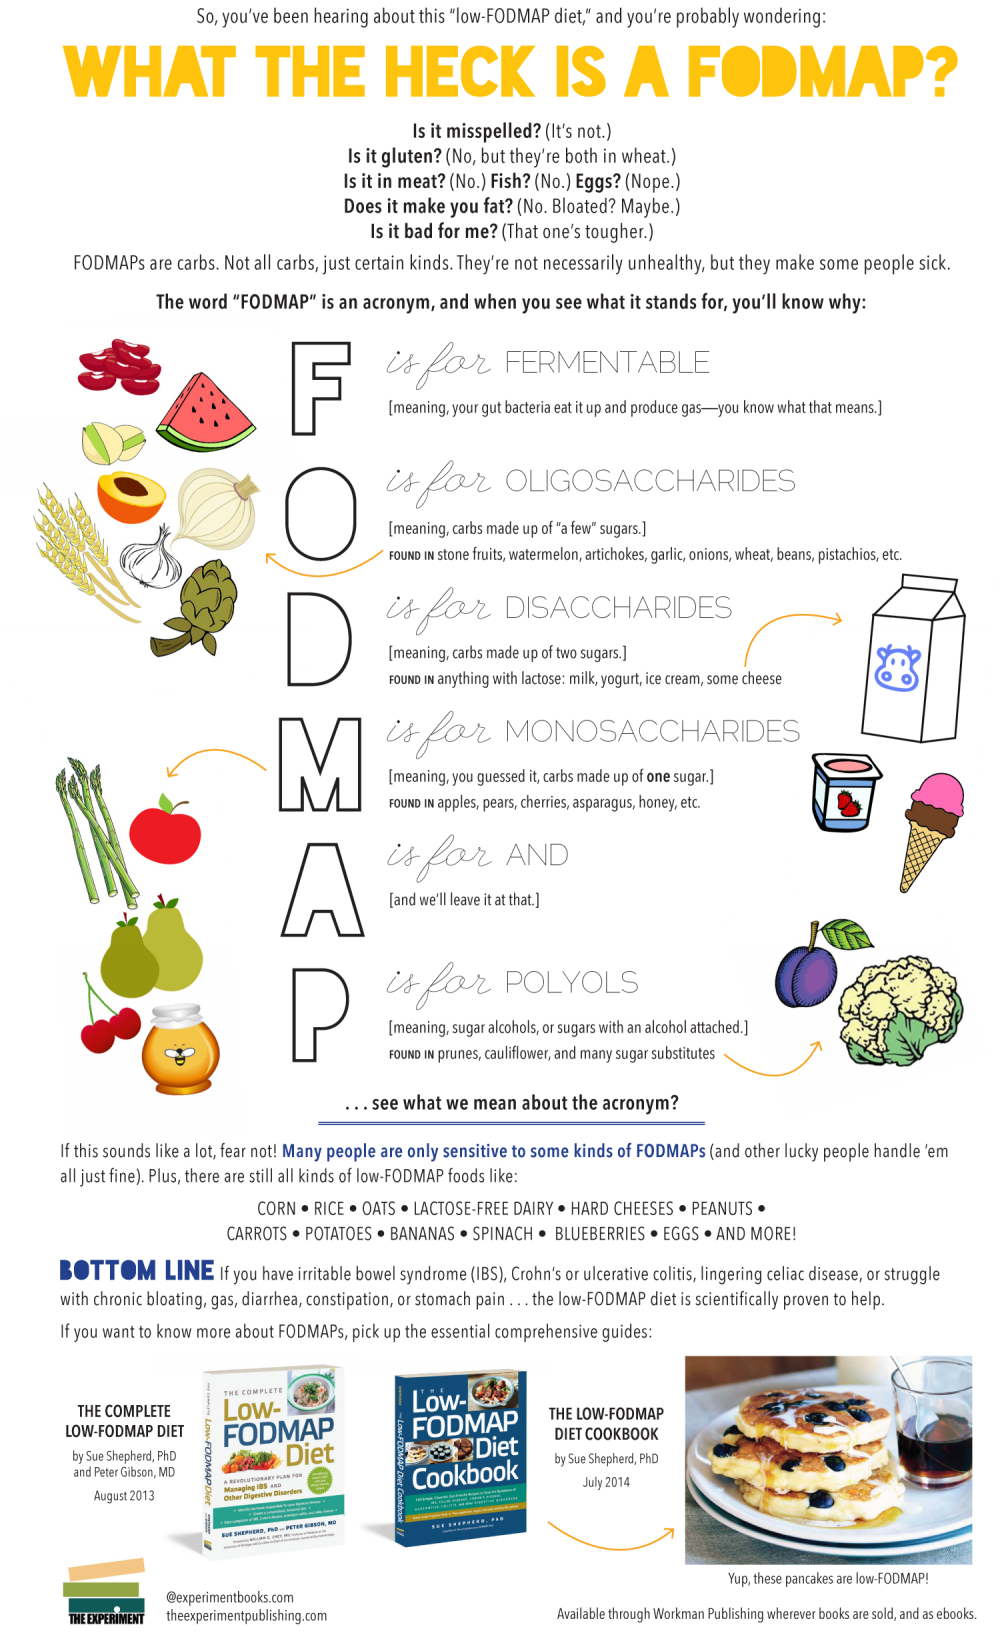 Gluten free dieters who still have symptoms might benefit from im a little skeptical but it couldnt hurt to try plus i already avoid many of these anyway low fodmap diet guideline for sensitive guts publicscrutiny Choice Image